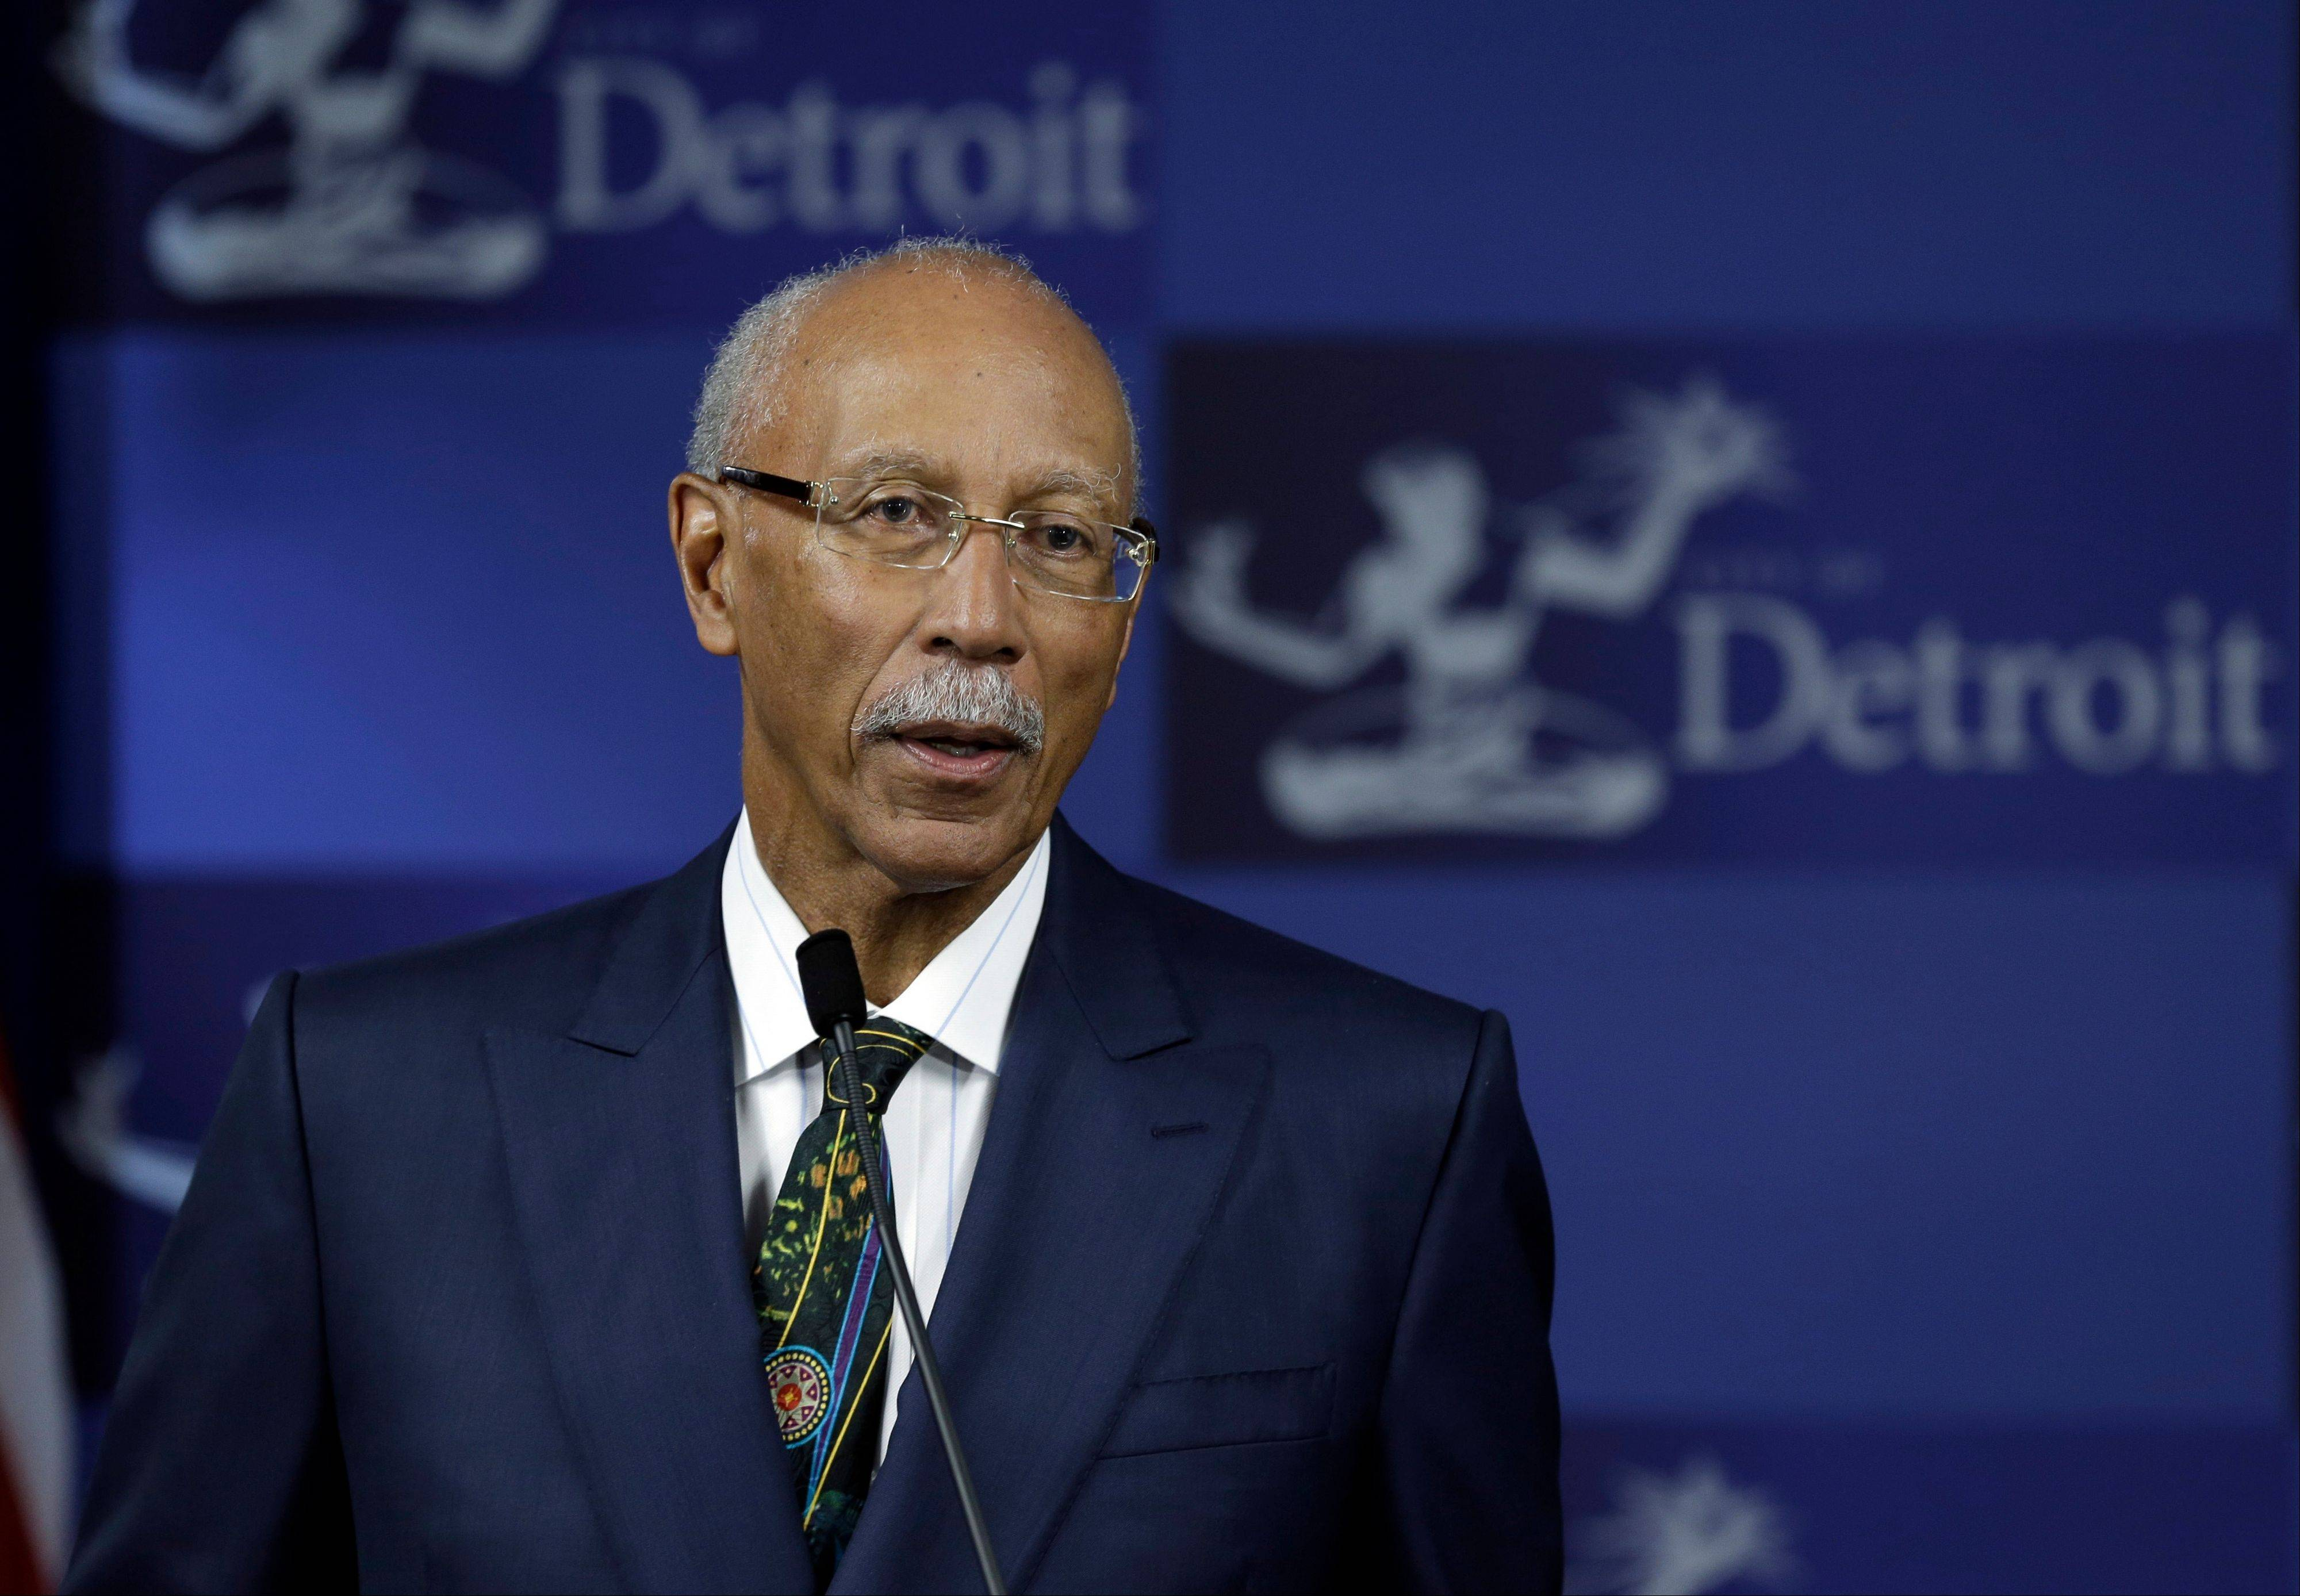 Detroit Mayor Dave Bing announced Tuesday he won't seek a second term as leader of the financially troubled city, which recently became the largest in the country placed under state oversight.